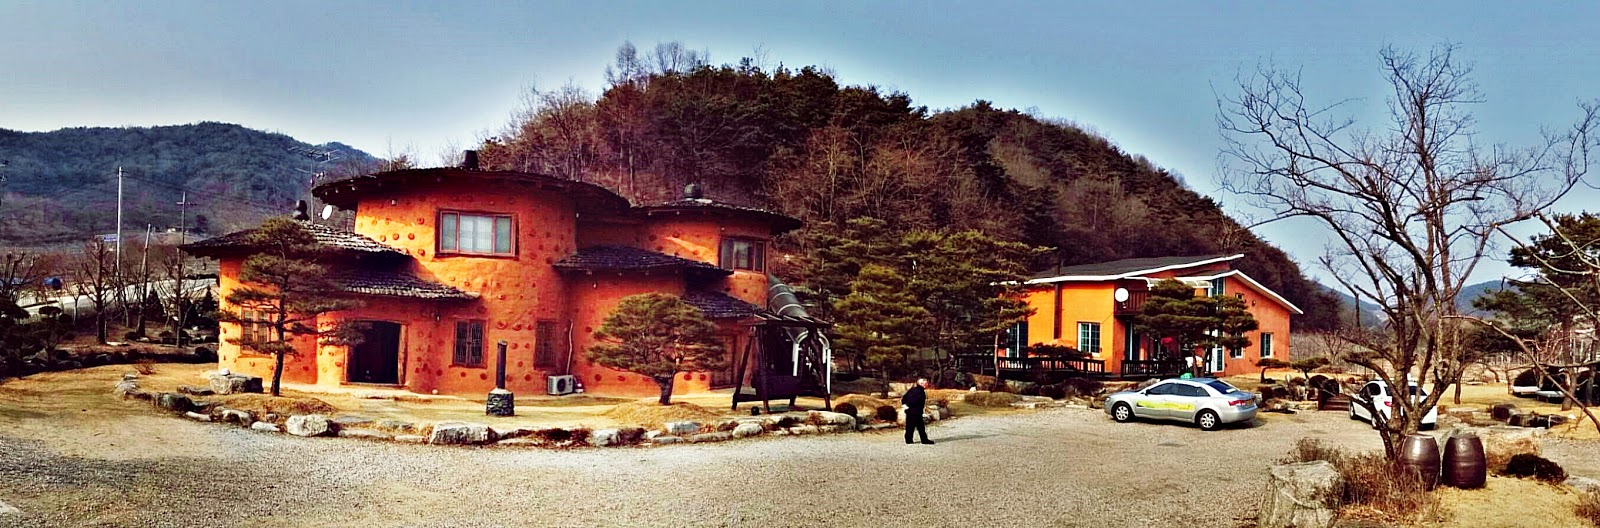 Yeongju Accommodation: Loess Pension 풍기 황토 펜션 | meheartseoul.blogspot.com